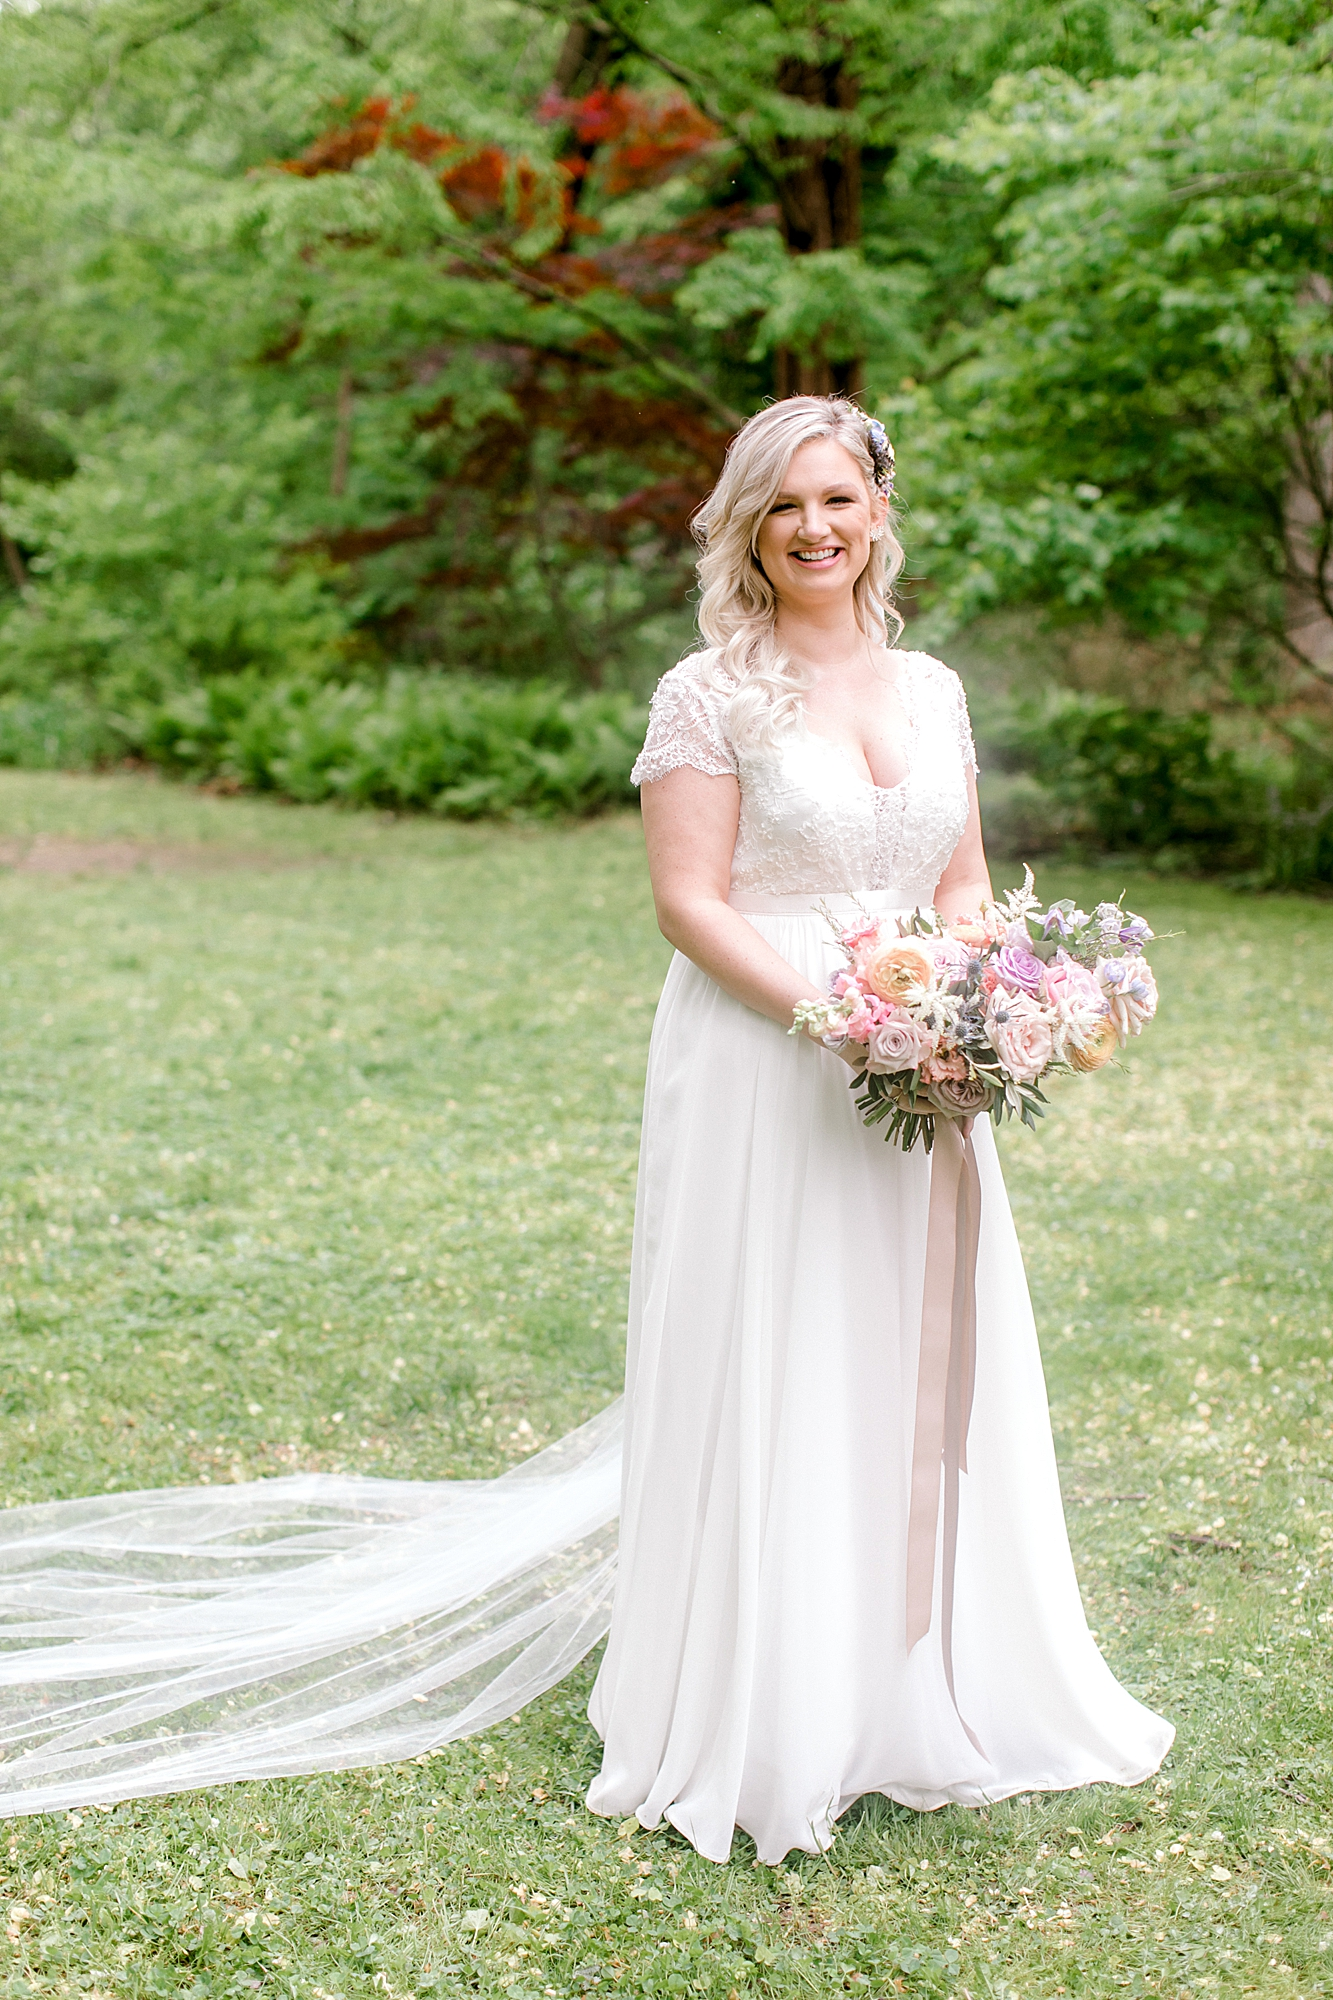 Intimate and Sweet Estate Wedding Photography by Magdalena Studios 0043